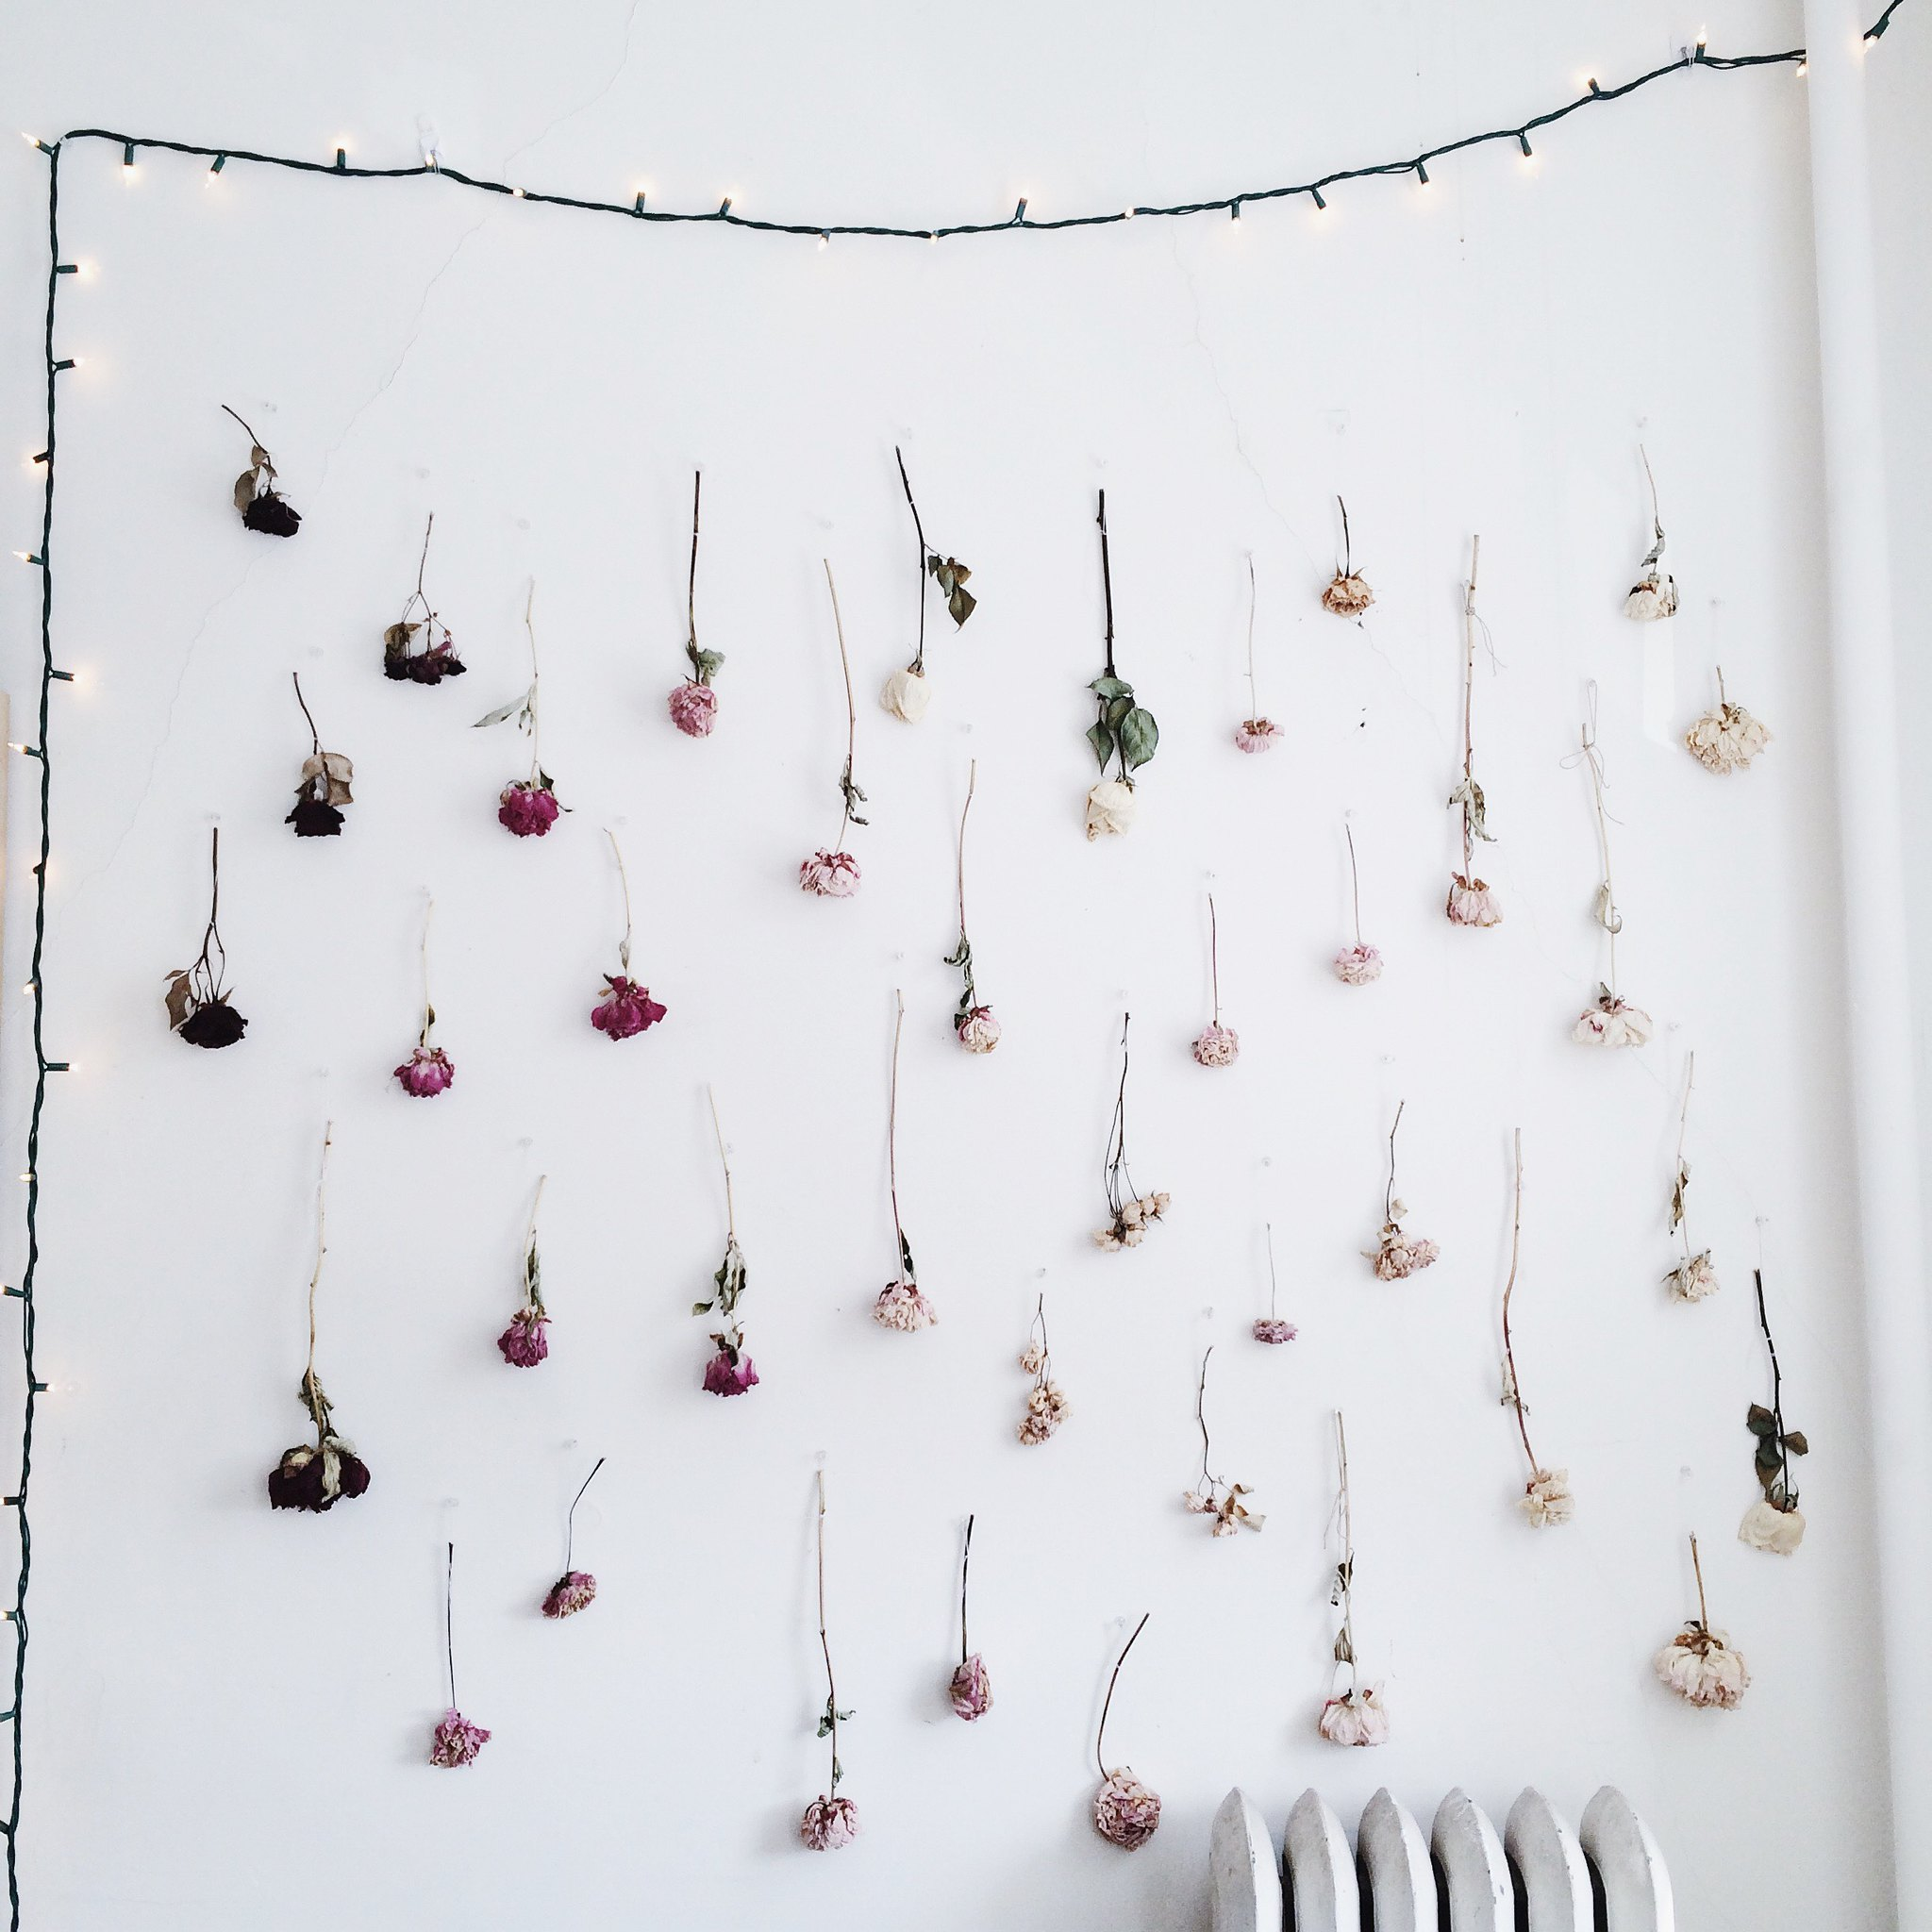 Diy Ombre Dried Flower Wall Juliette Laura